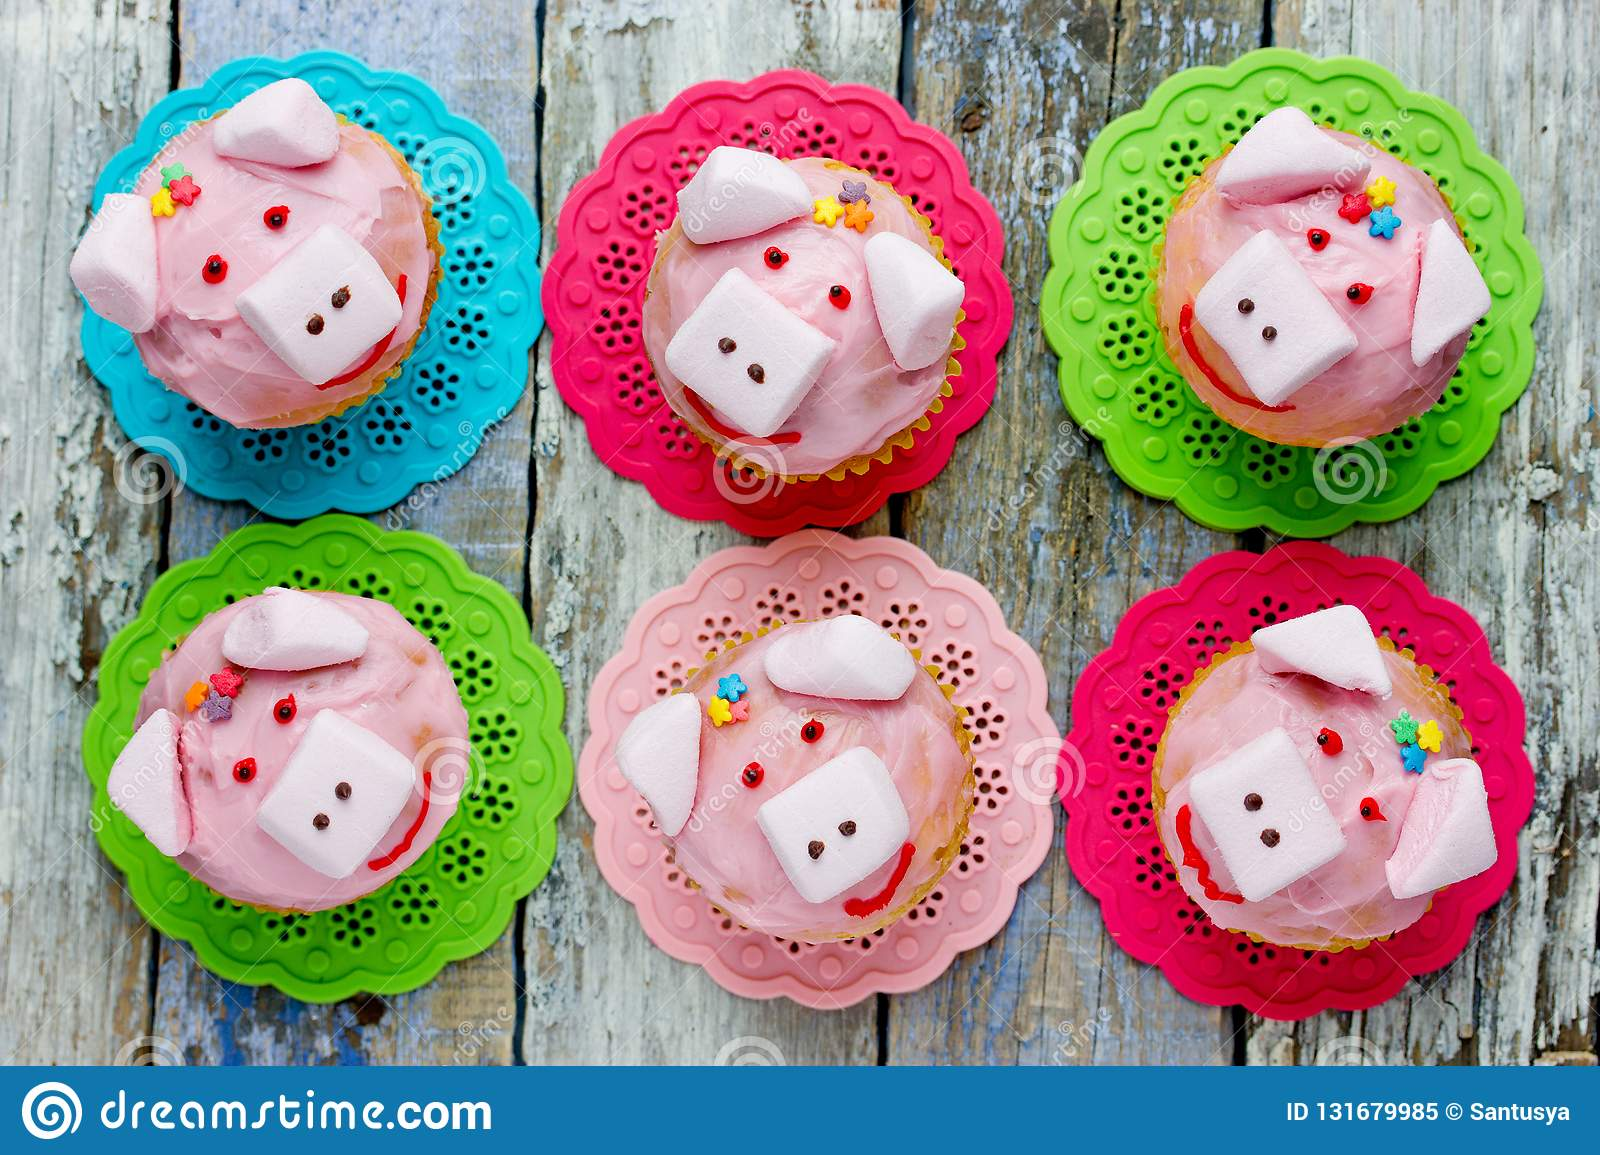 Pig Cupcakes Animal Shaped Funny Cakes For Kids